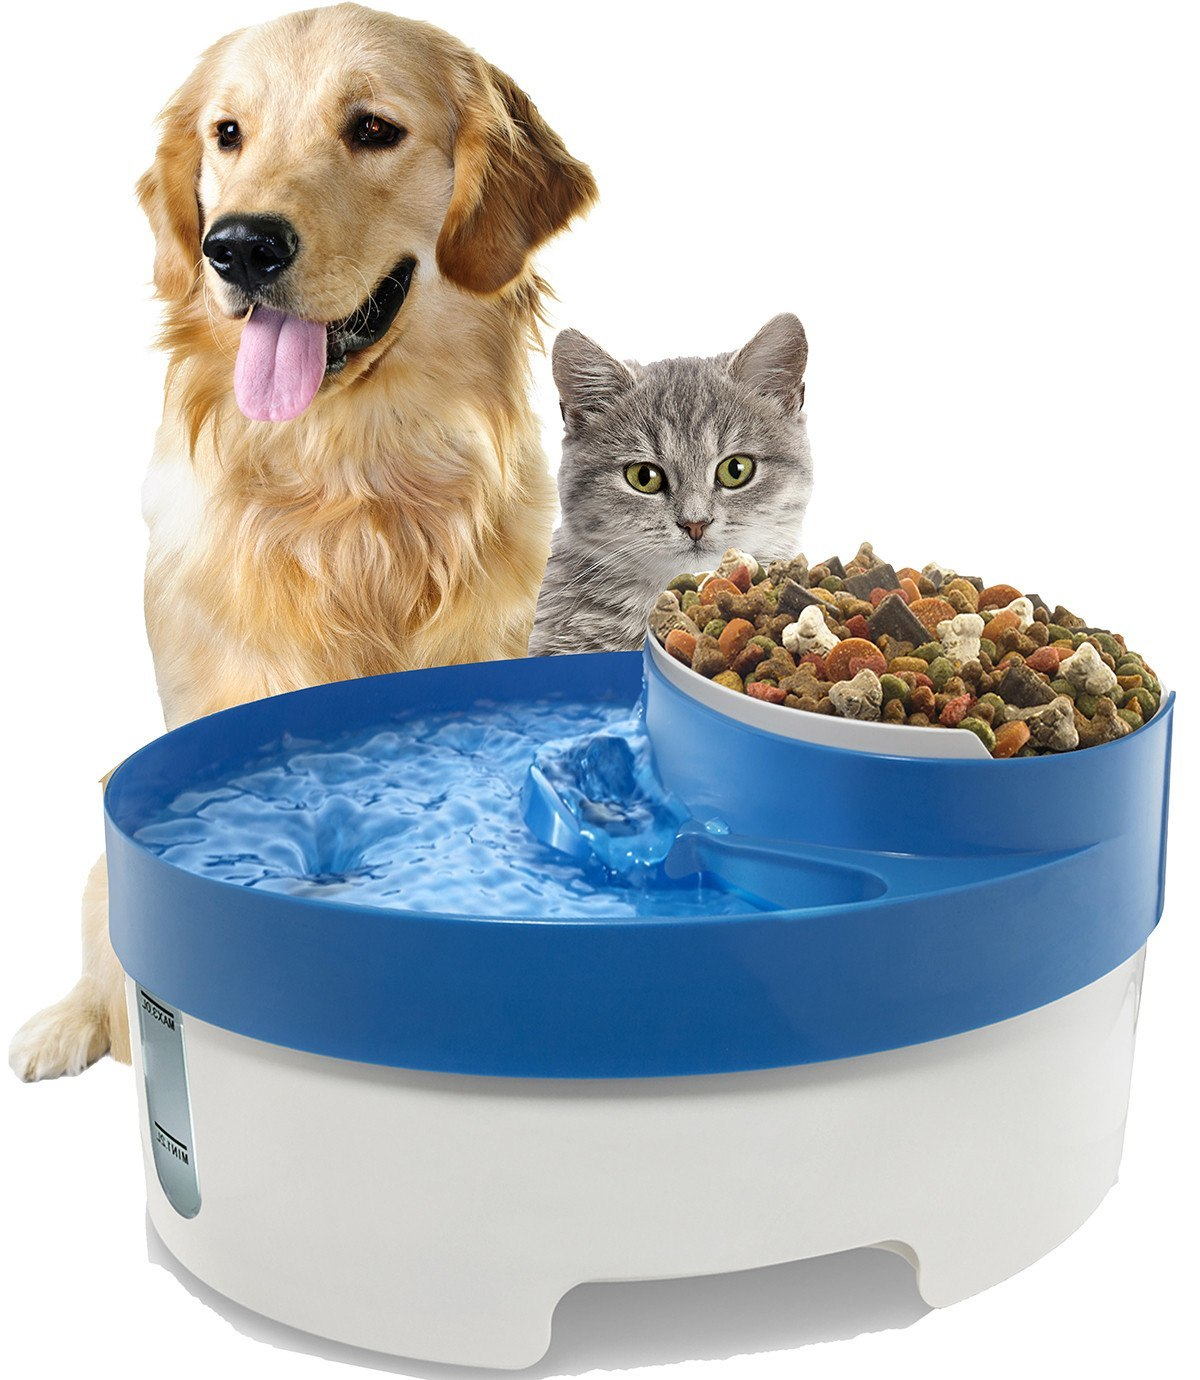 Dog & Cat Helpers - Pet Water Fountain For Cat Dog Automatic Food Bowl Dish Feeder Dispenser 3 In 1